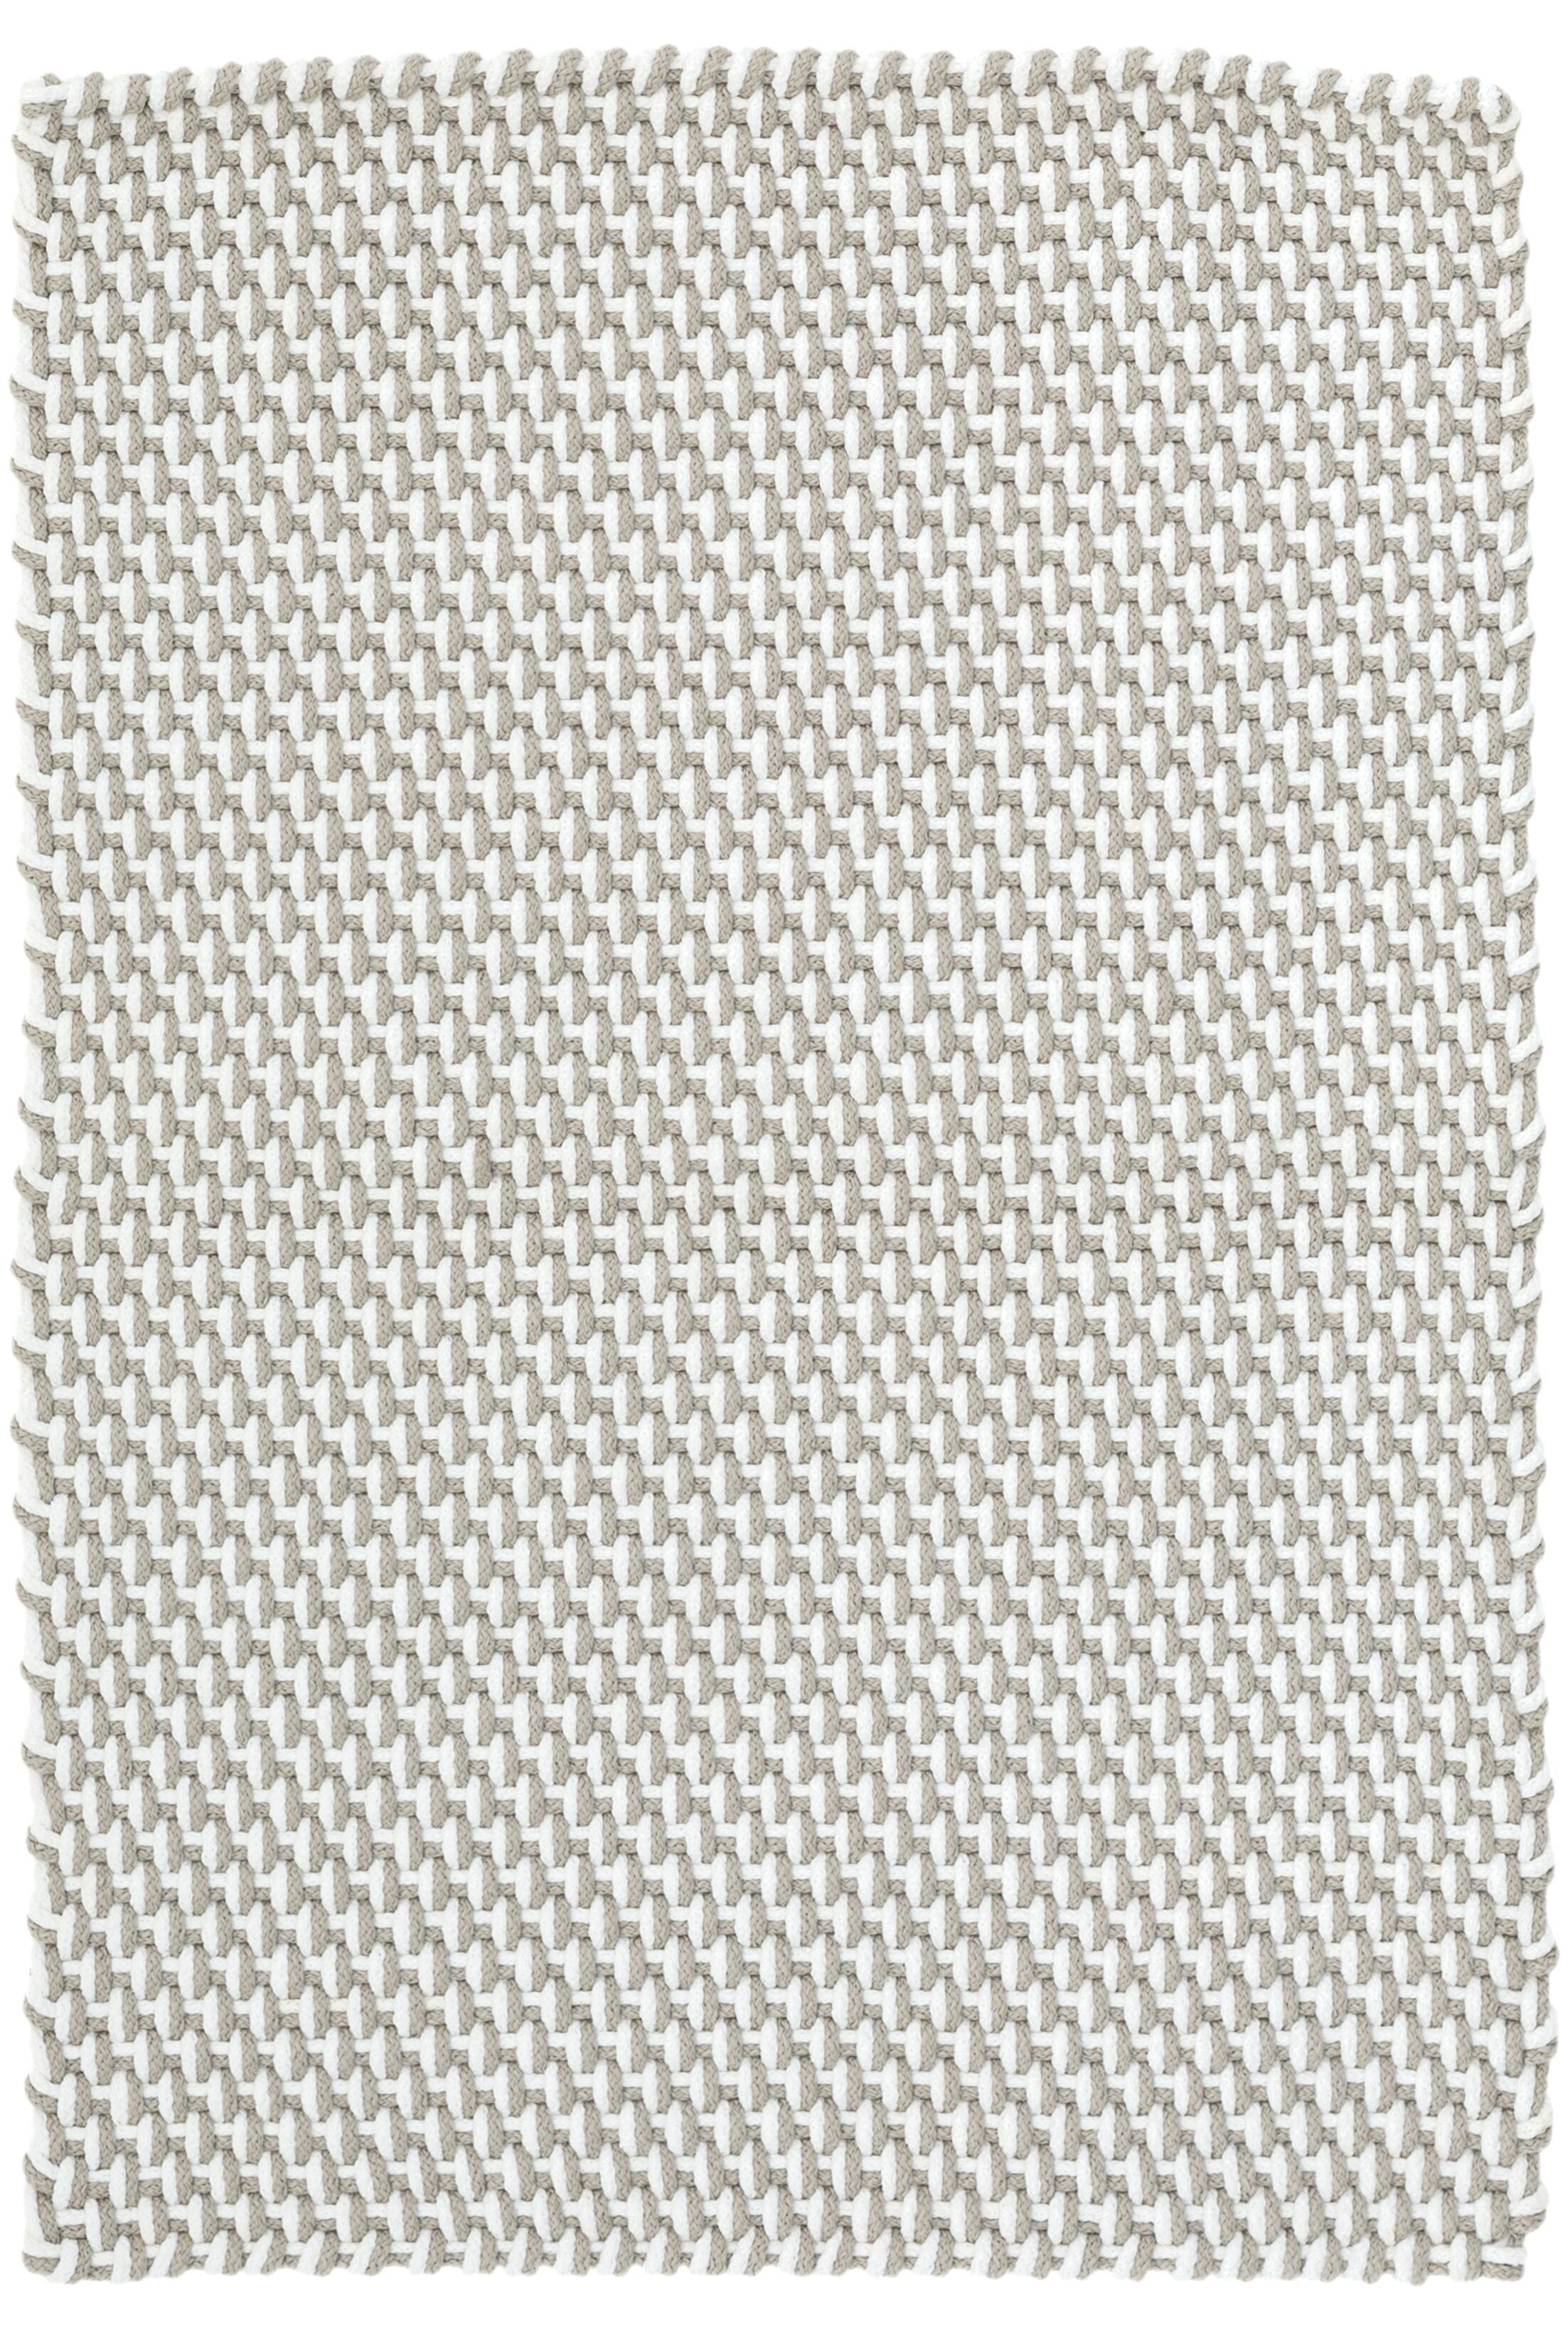 Two-Tone Rope Platinum/White Indoor/Outdoor Area Rug Rug Size: 8'6